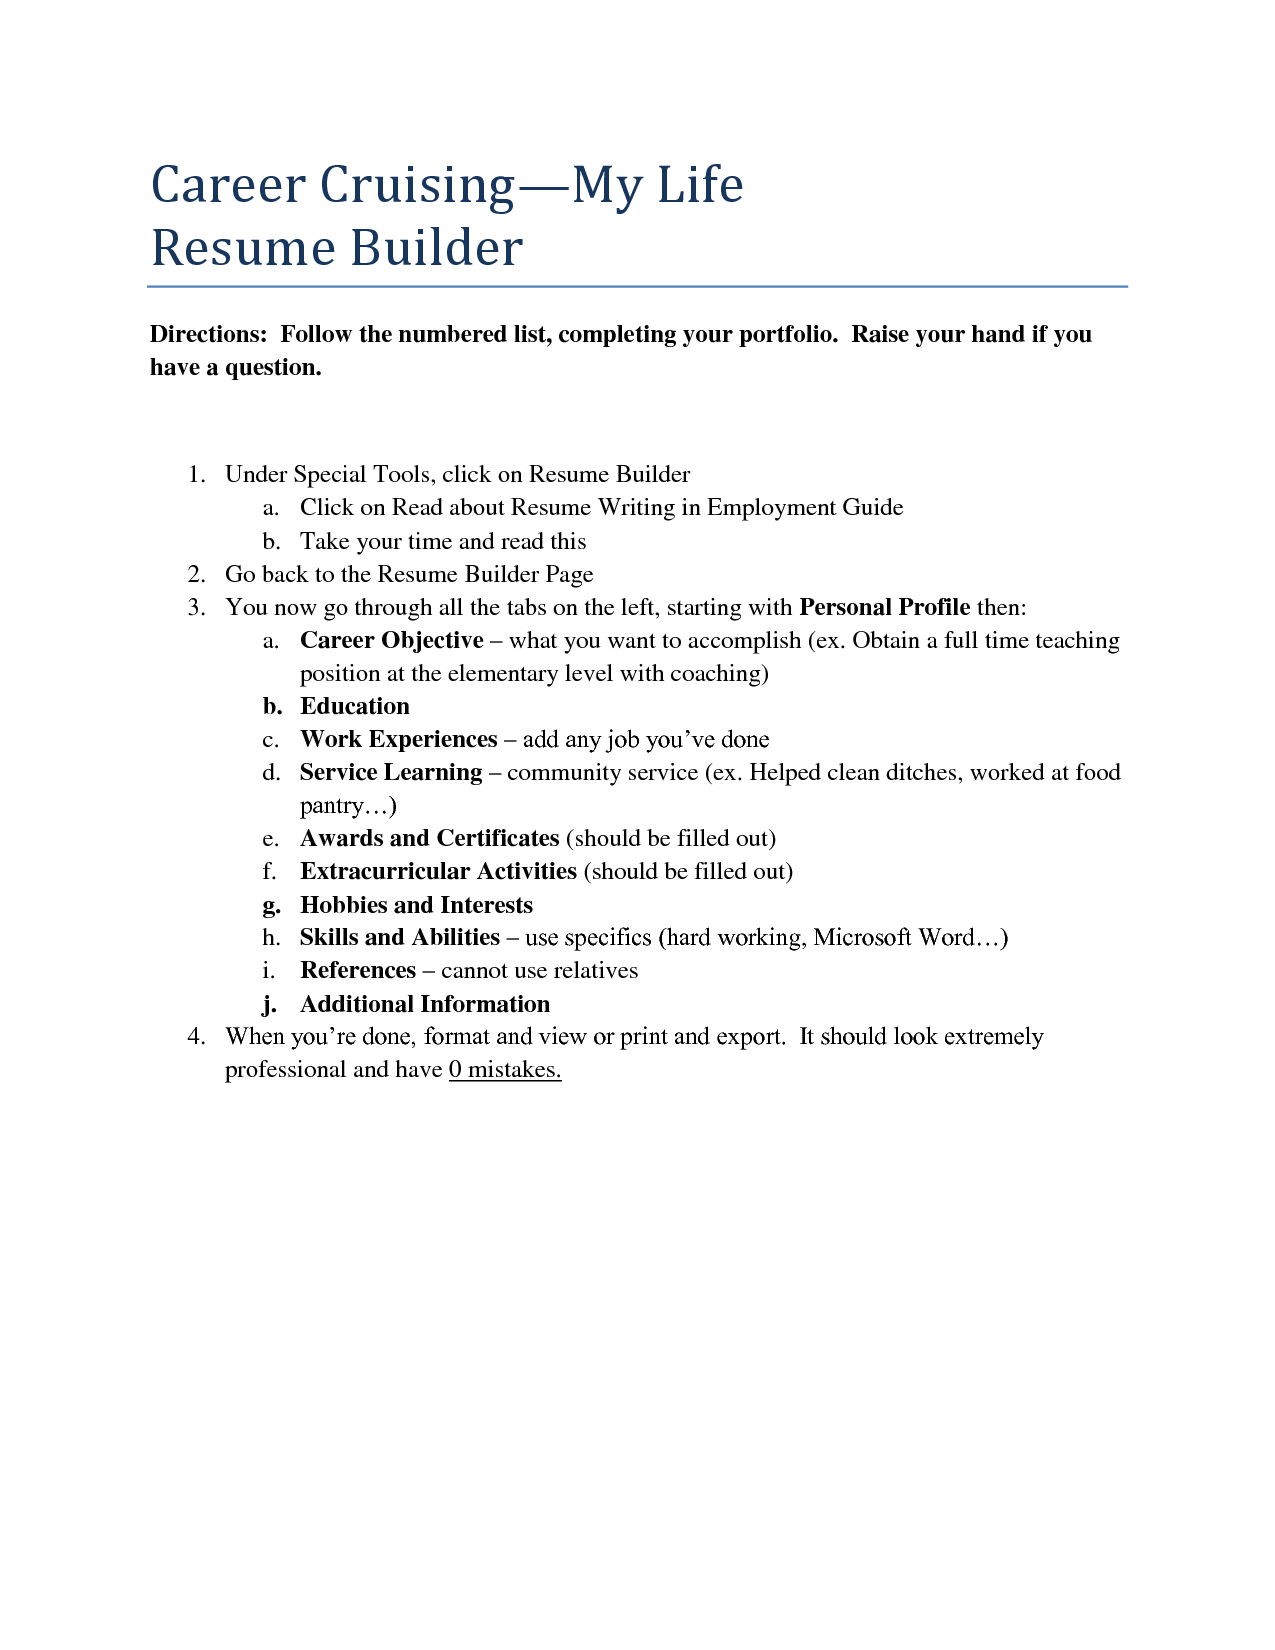 Career Builder Resume Samples Templates And Builders Qbdrj  Home